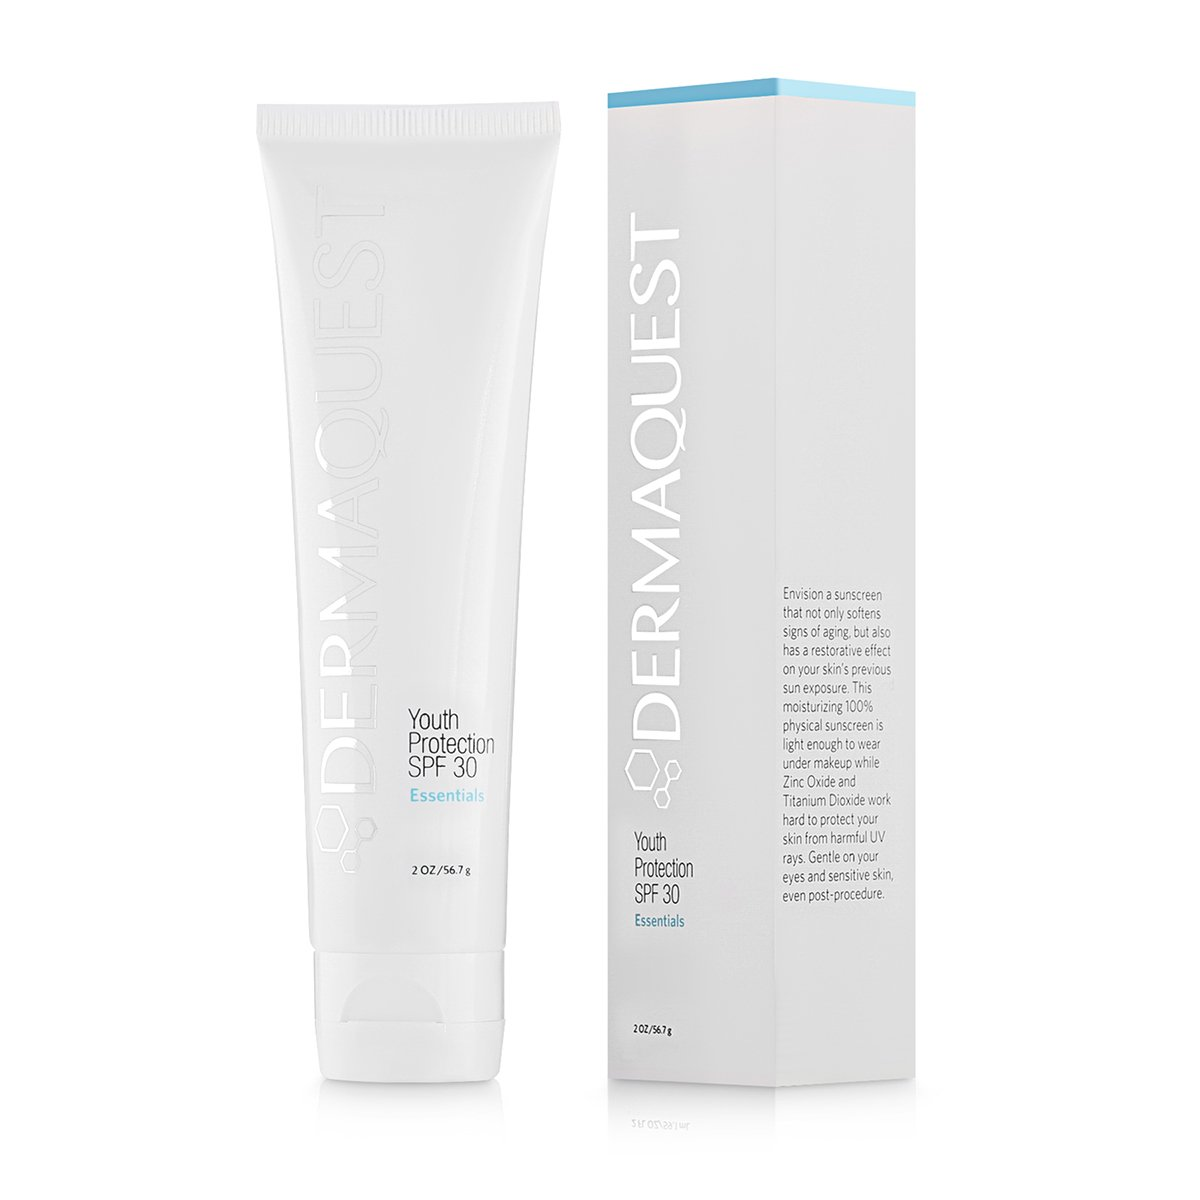 DermaQuest Essential Anti-aging Moisturizing Youth Protection Sunscreen SPF 30, 2 oz